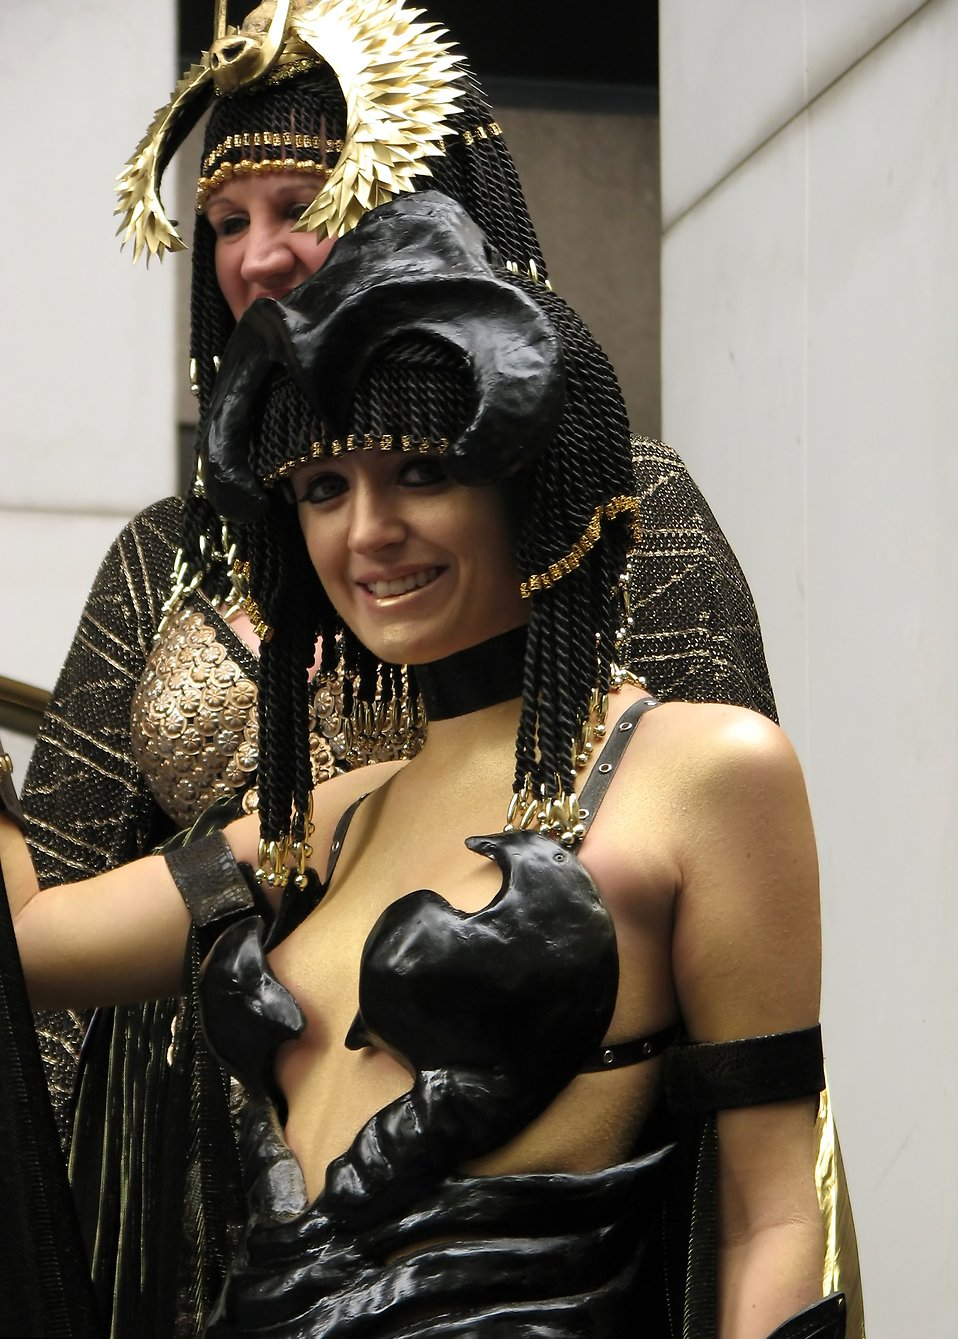 A beautiful girl in an Egyptian costume at Dragoncon 2009 in Atlanta, Georgia : Free Stock Photo